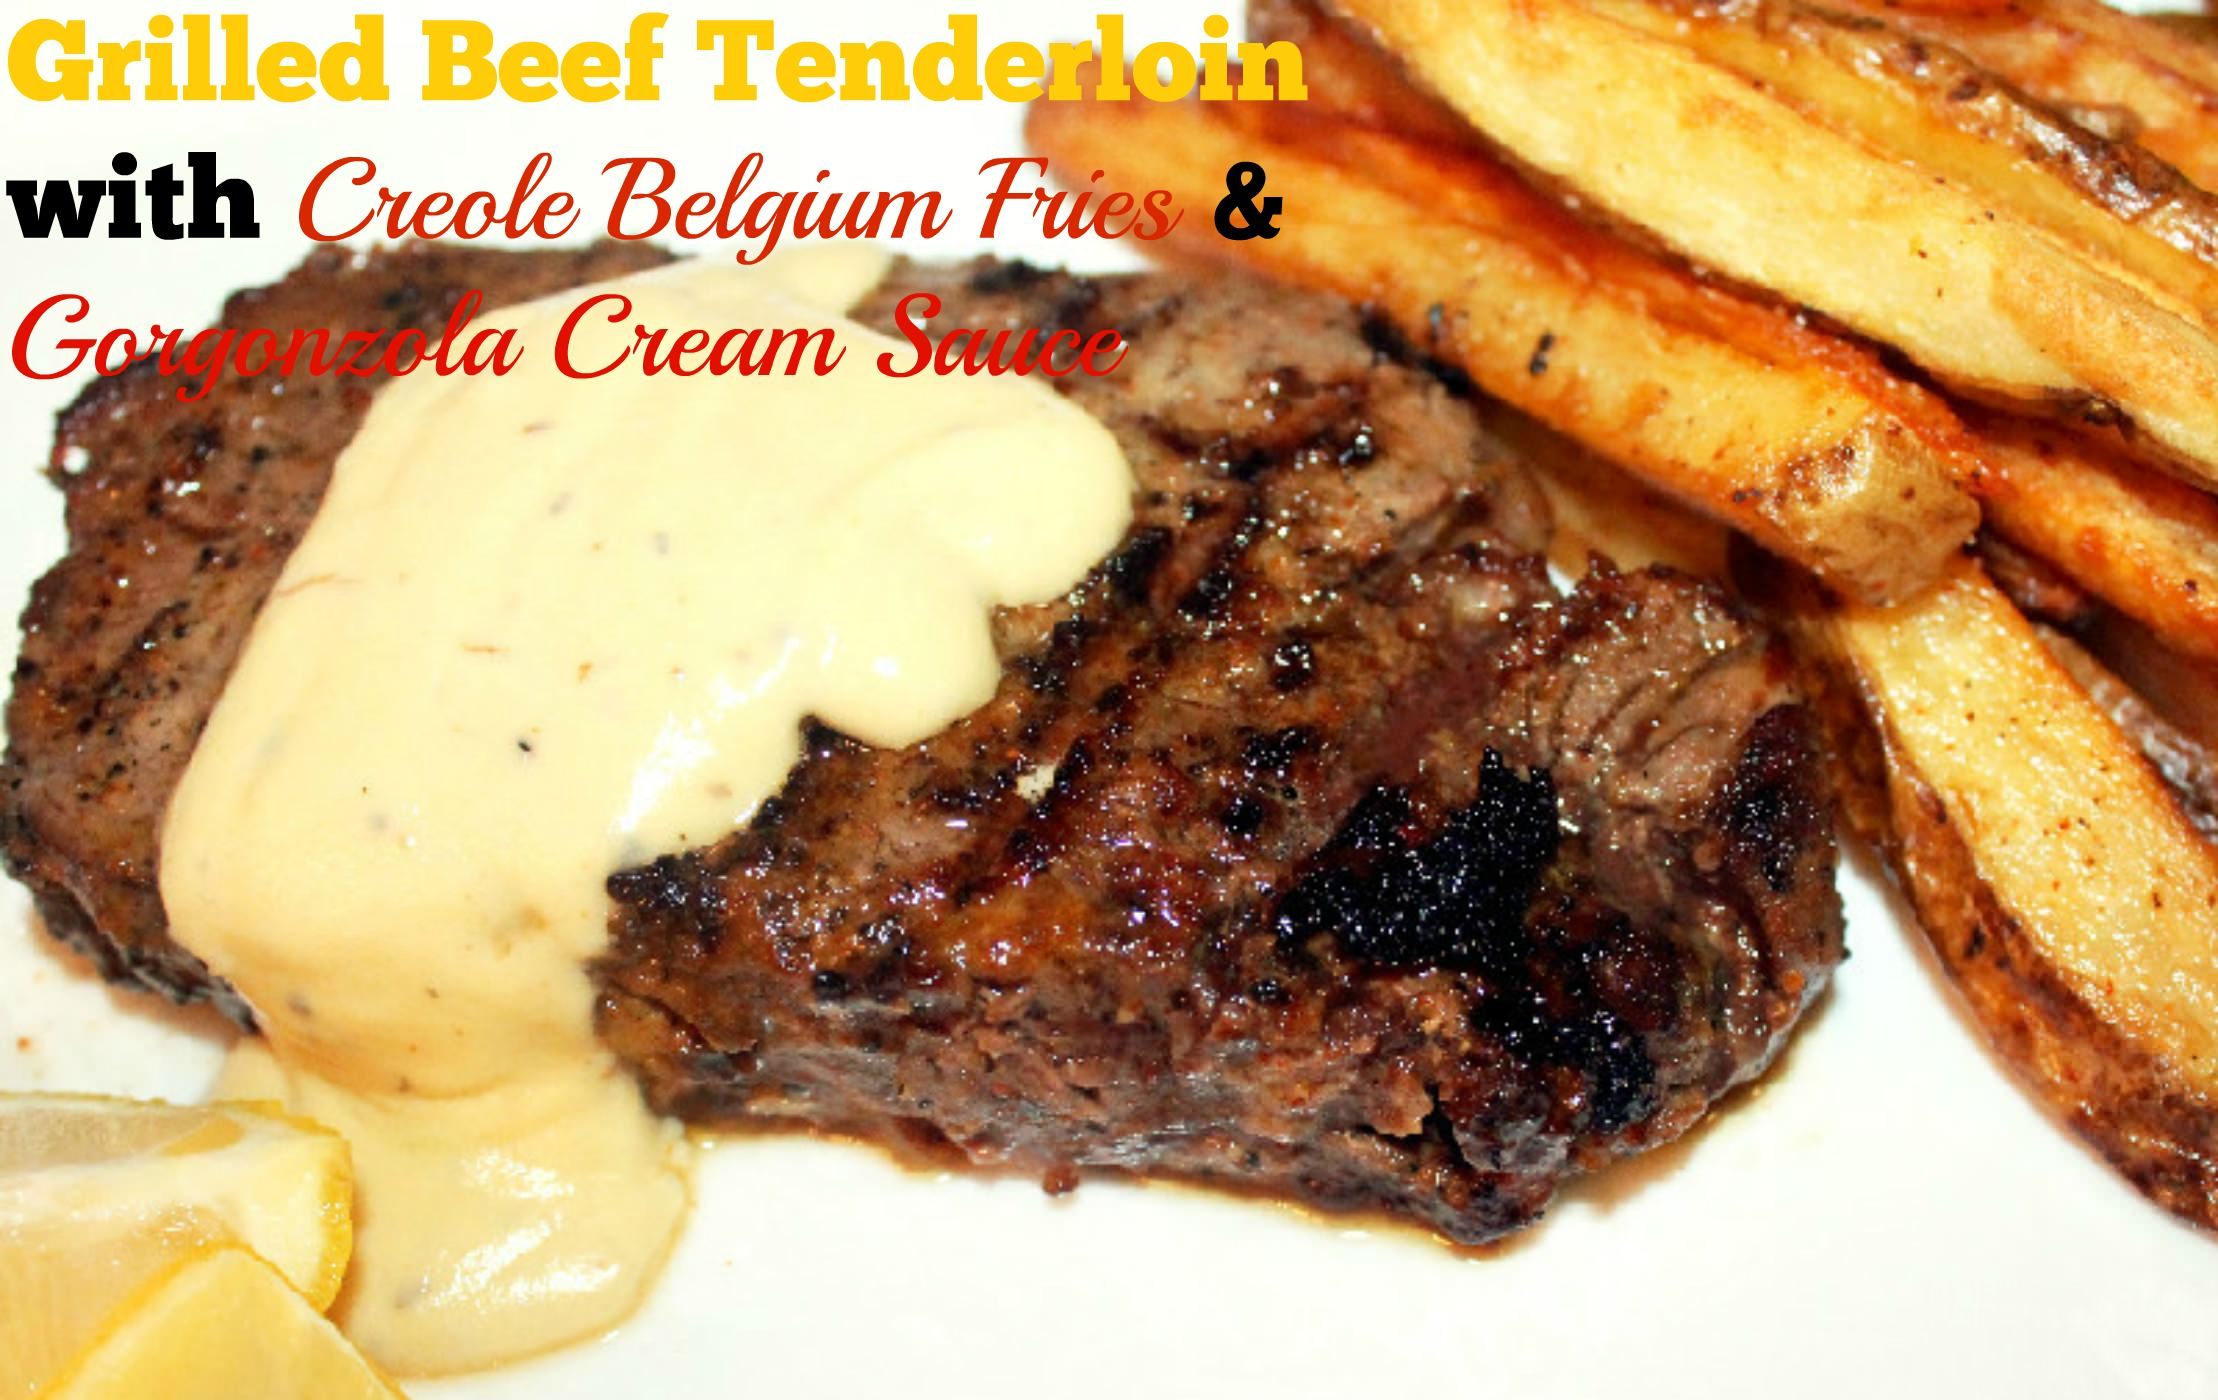 Grilled Beef Tenderloin with Creole Belgium Fries and Gorgonzola Cream Sauce-Creole Contessa